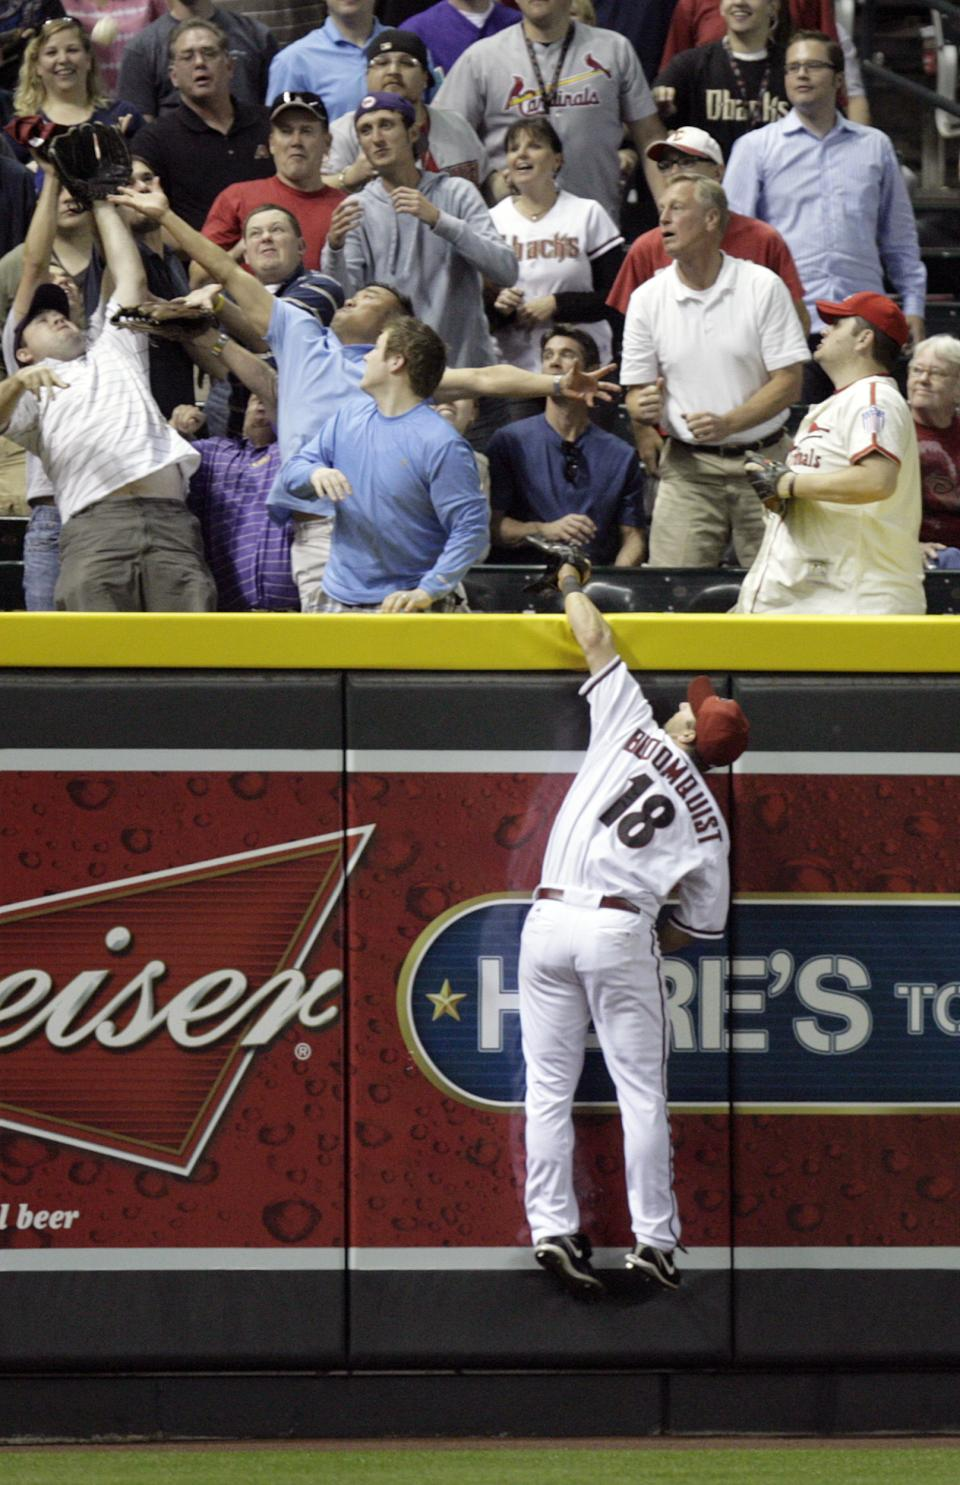 Arizona Diamondbacks left fielder Willie Bloomquist leaps for but can only watch as a ball hit for a home run by St. Louis Cardinals' Lance Berkman lands in the crowd in the seventh inning of an MLB baseball game Monday, April 11, 2011, in Phoenix. (AP Photo/Paul Connors)